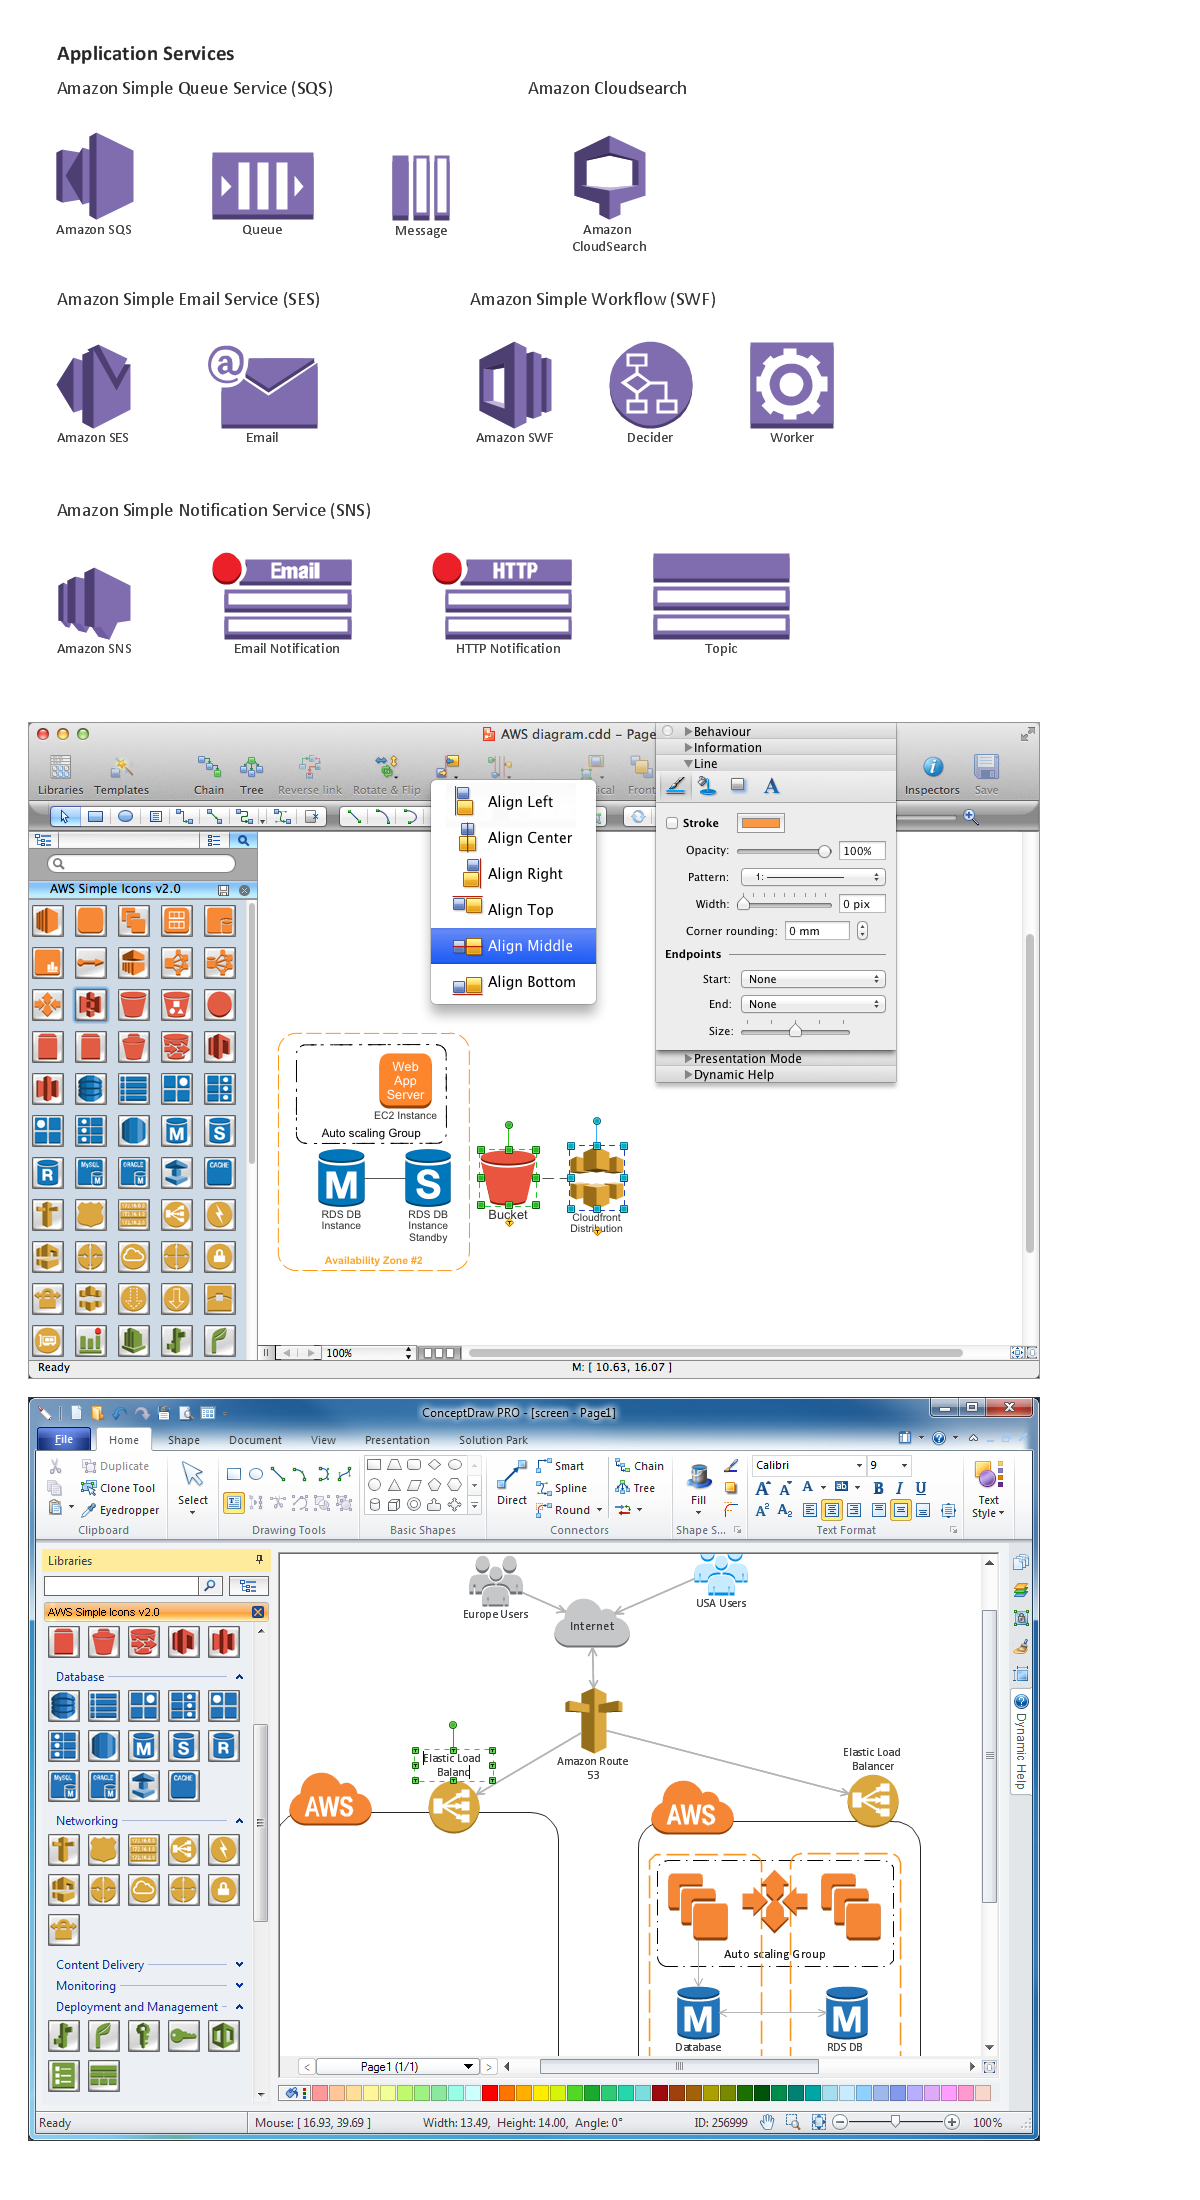 Diagramming software for Amazon Web Service <br>icon set: Application Services *